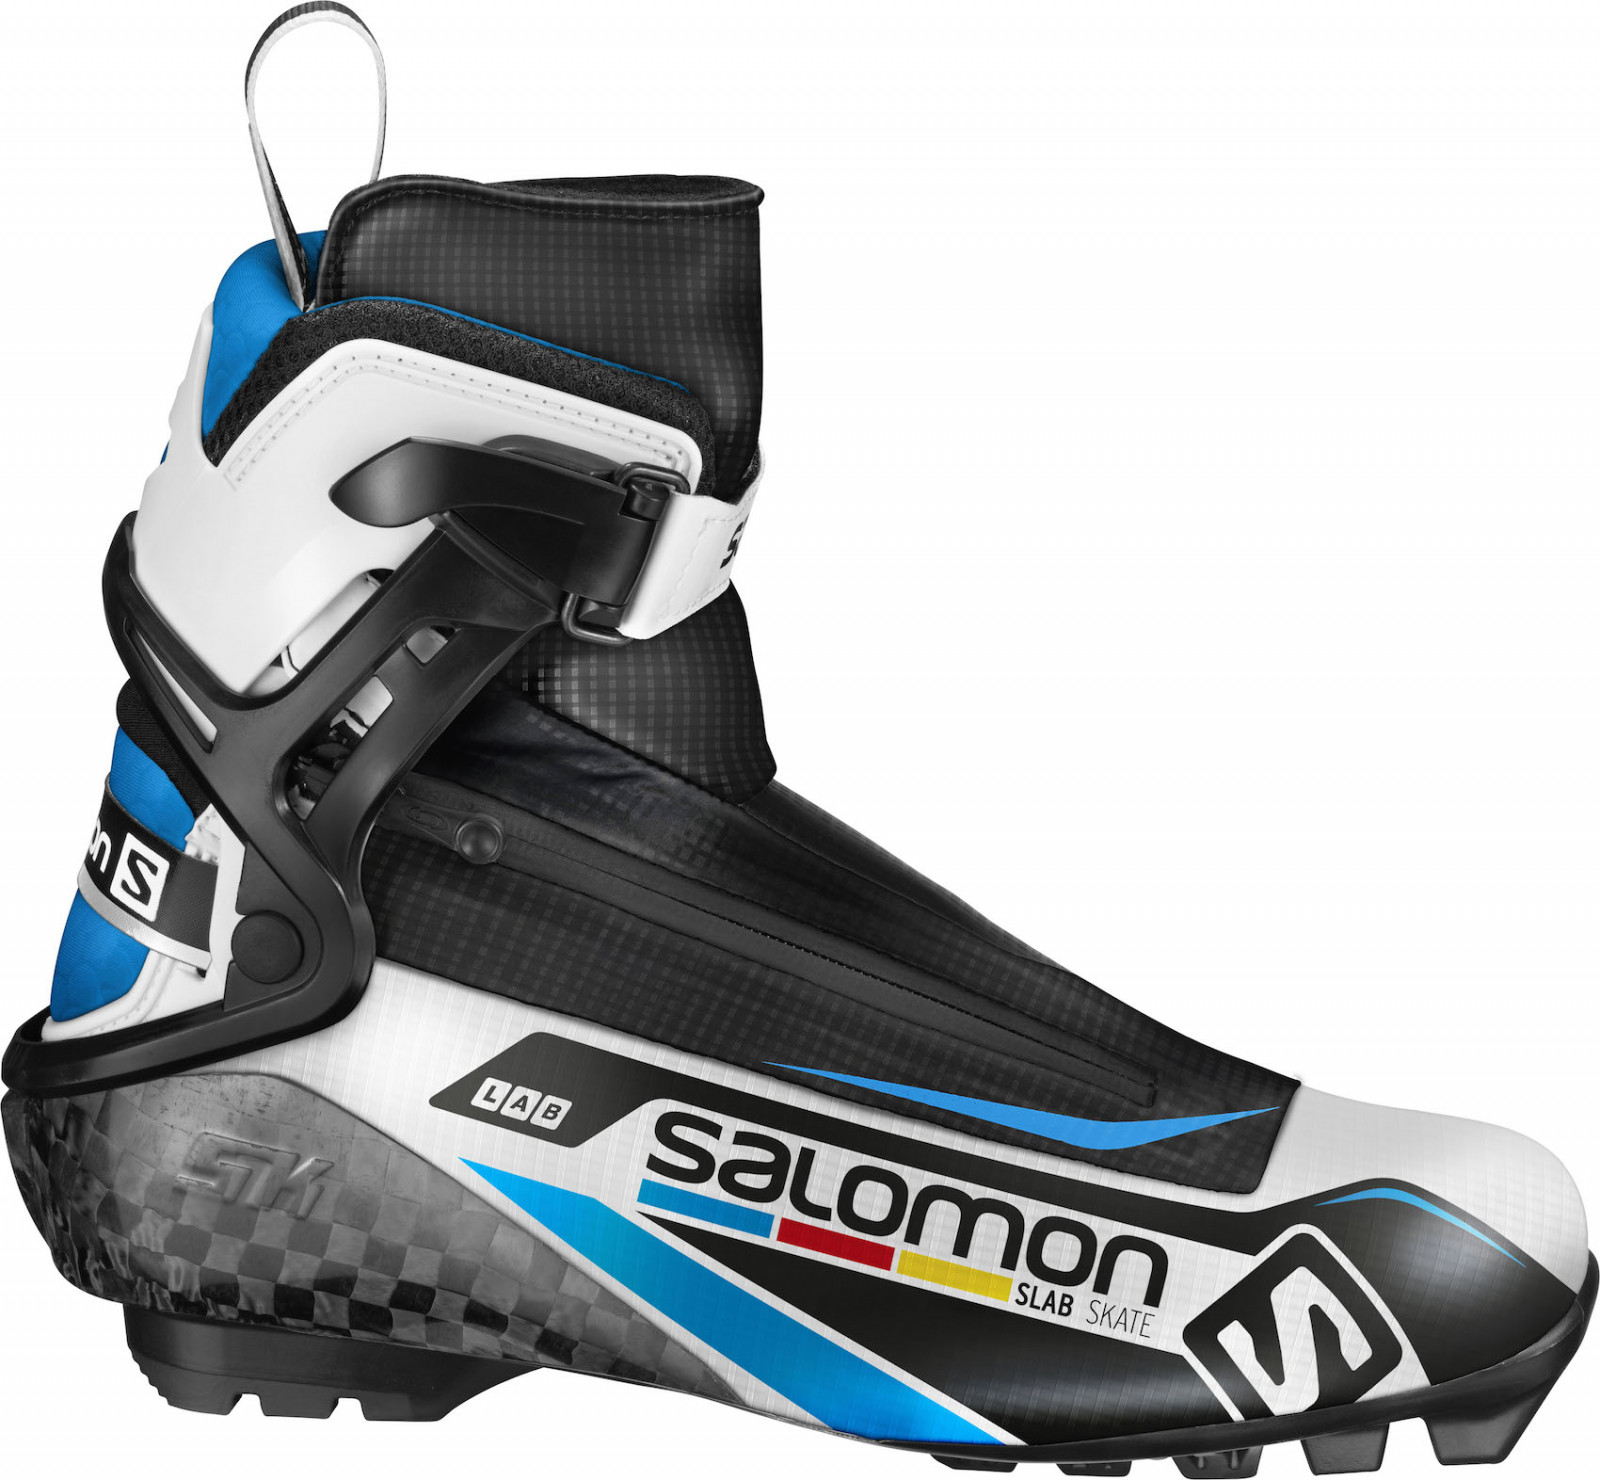 Salomon S-LAB Skate